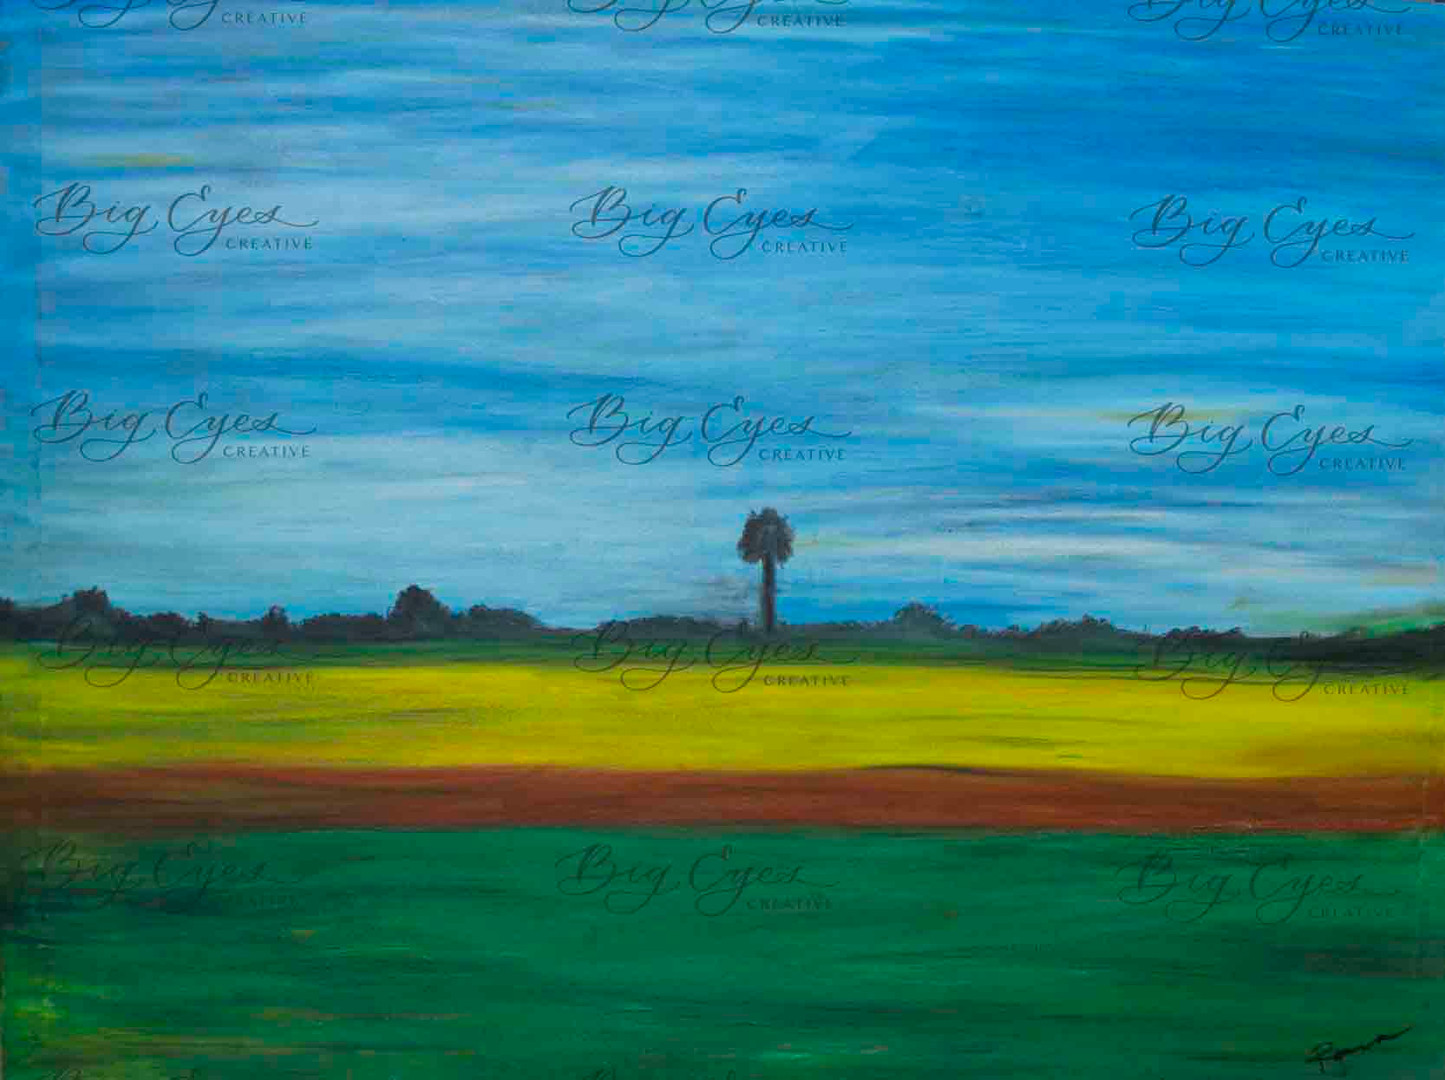 Oil Pastel on Canvas. Available at Mere Cafe at $180.